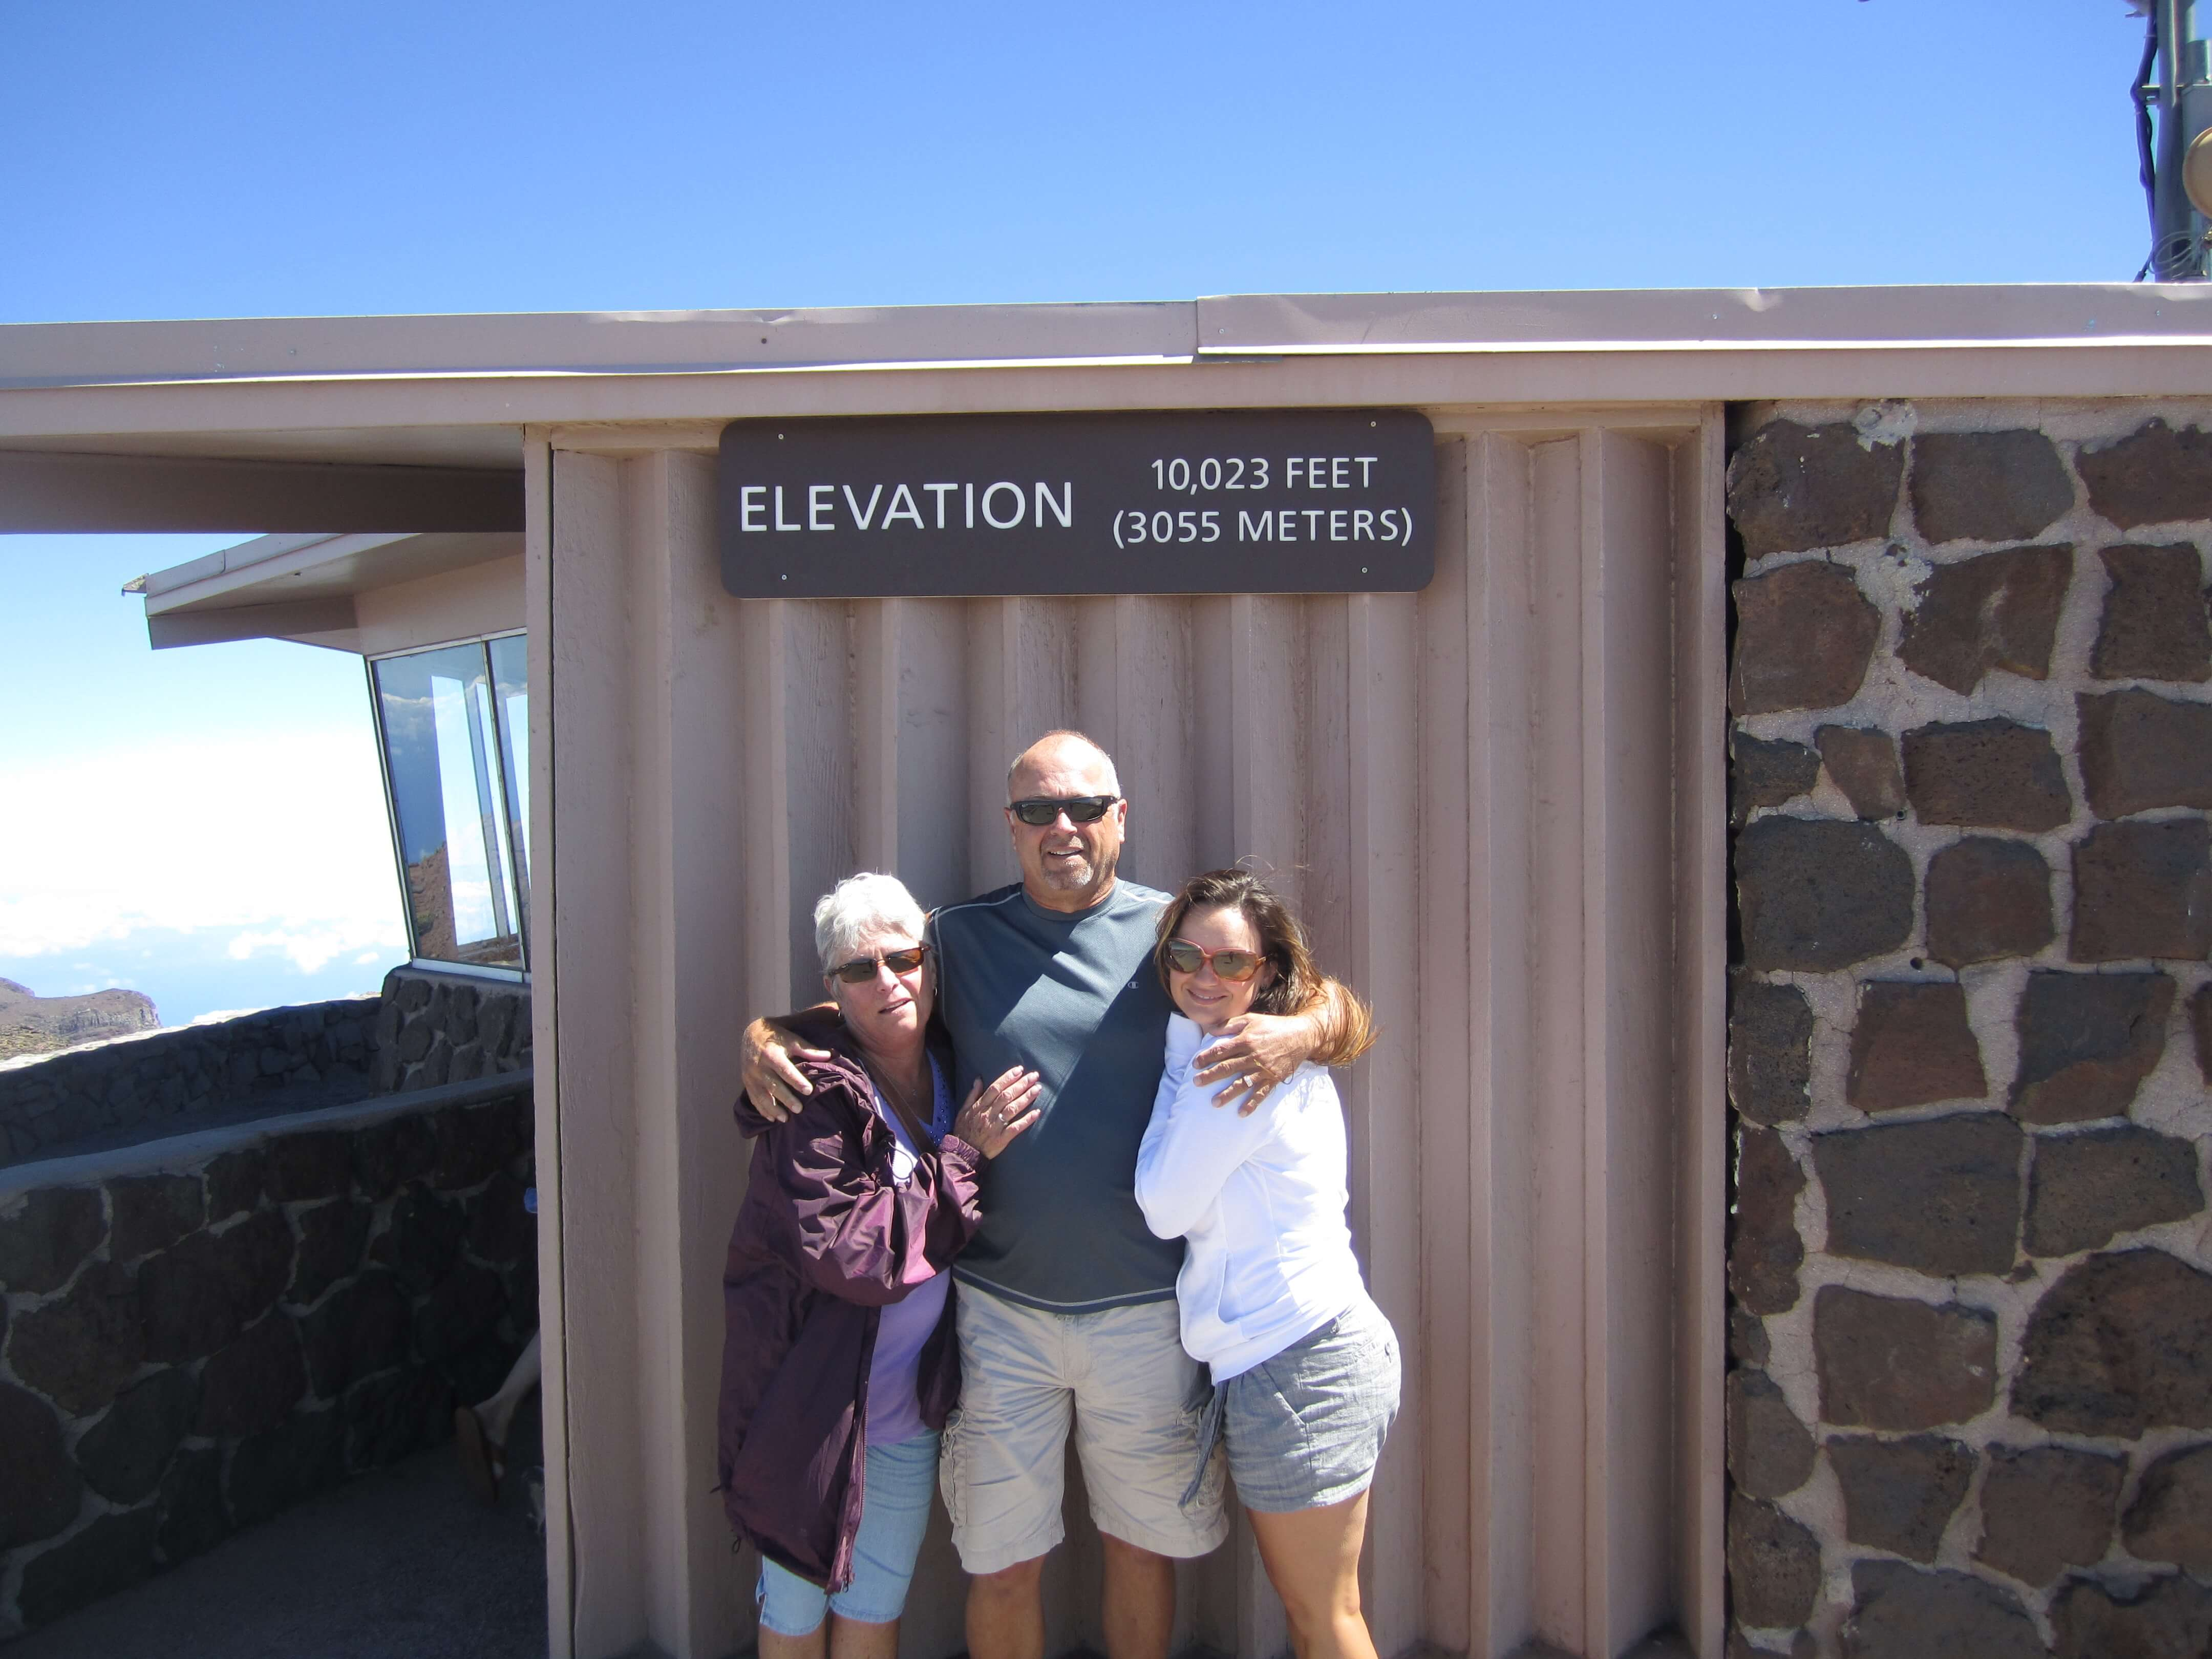 Haleakala summit at 10,023 feet